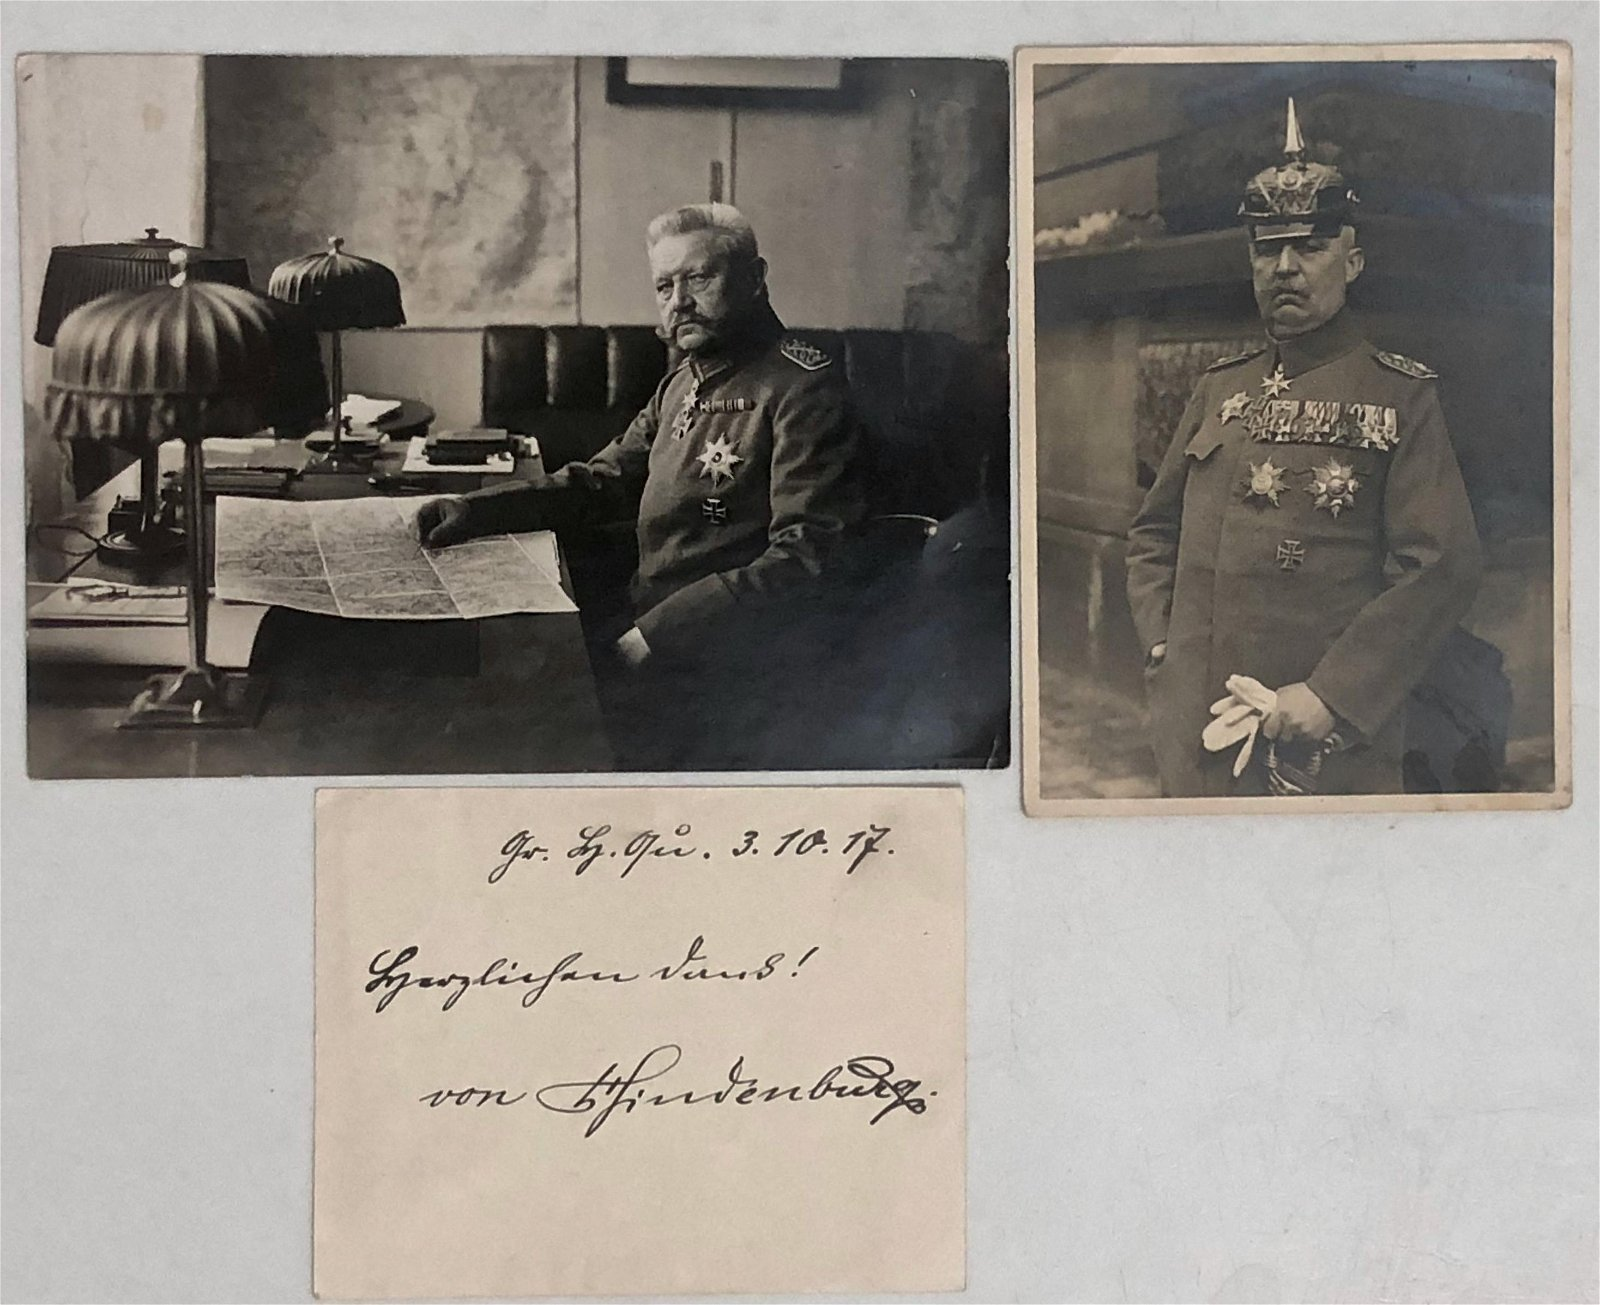 PAUL VON HINDENBURG Inscribed Note & Photos, 1917